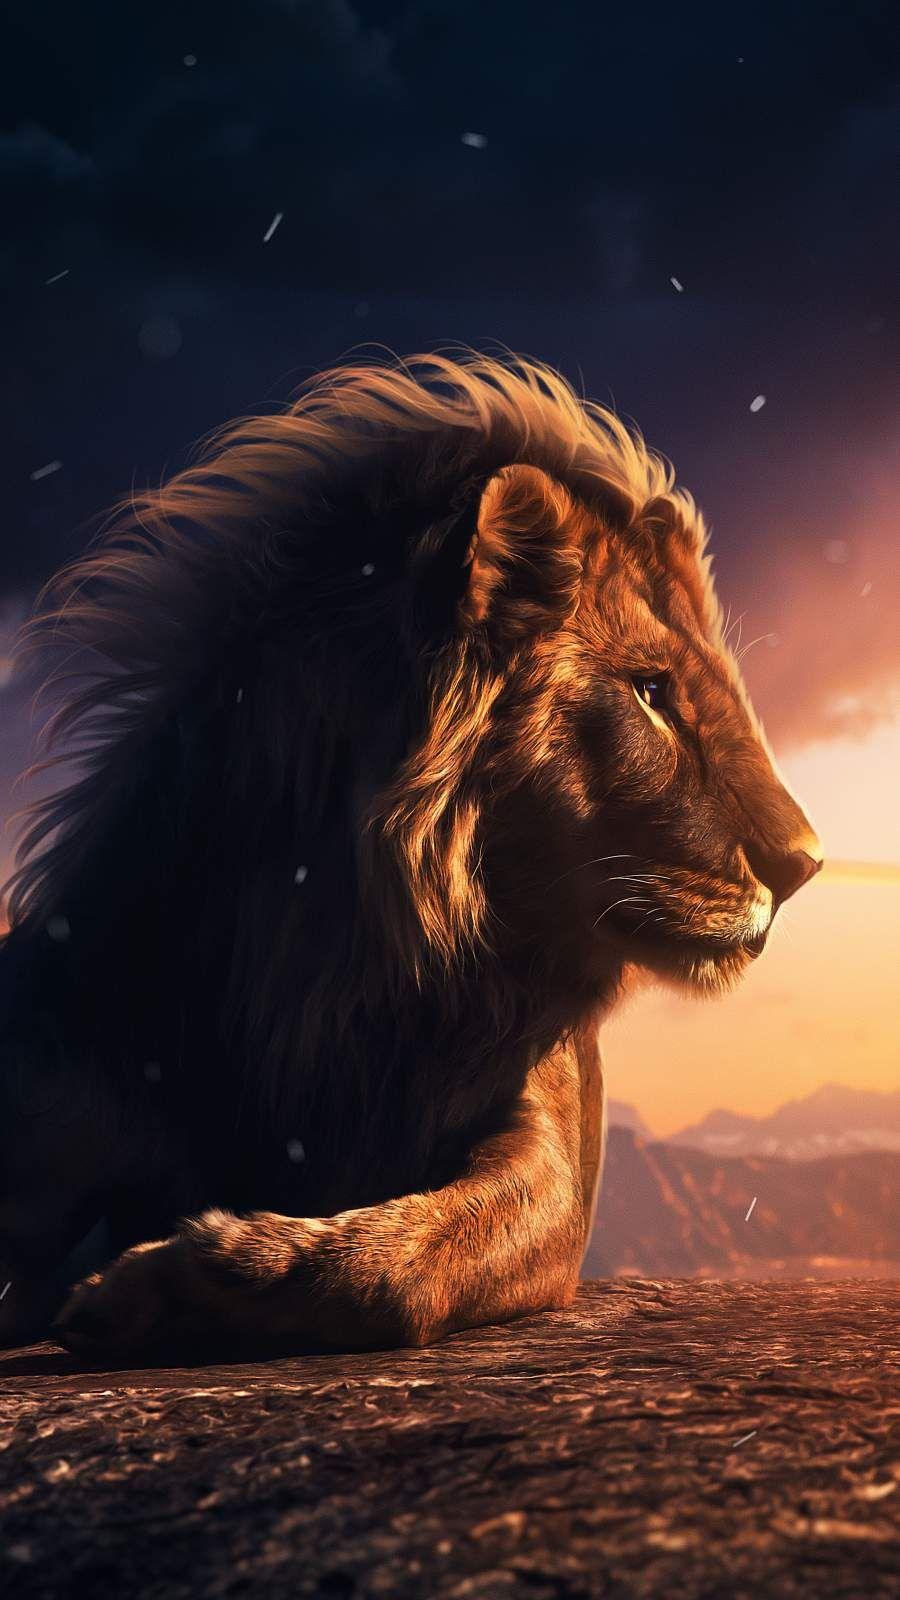 Iphone Wallpapers For Iphone 12 Iphone 11 Iphone X Iphone Xr Iphone 8 Plus High Quality Wallpapers Ipad Bac Lion Live Wallpaper Lion Images Lion Wallpaper